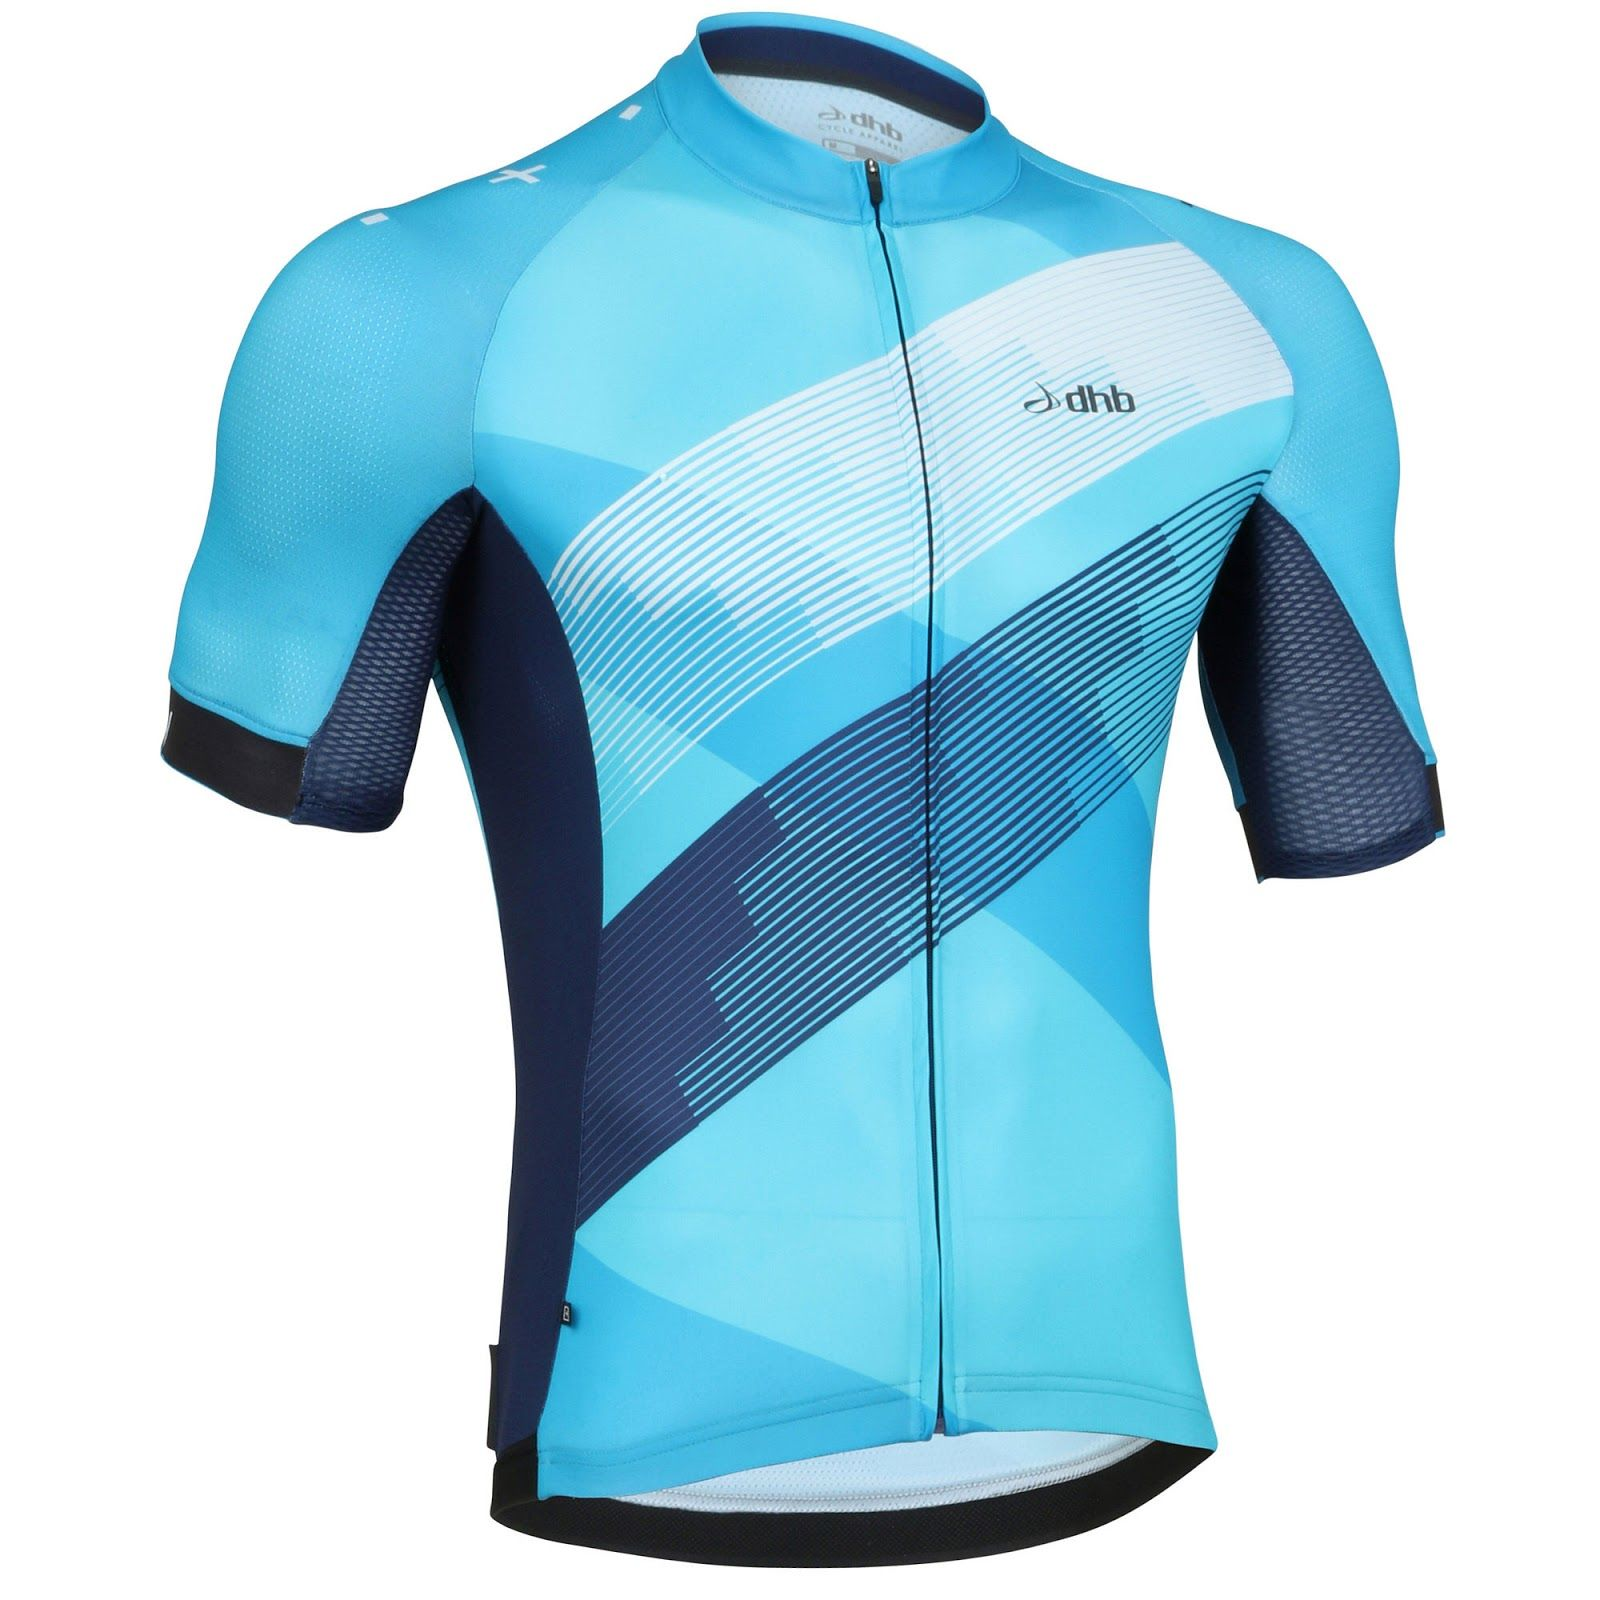 Unique Cool Cycling Jerseys 1 Jpg 1600 1600 Cycling Jersey